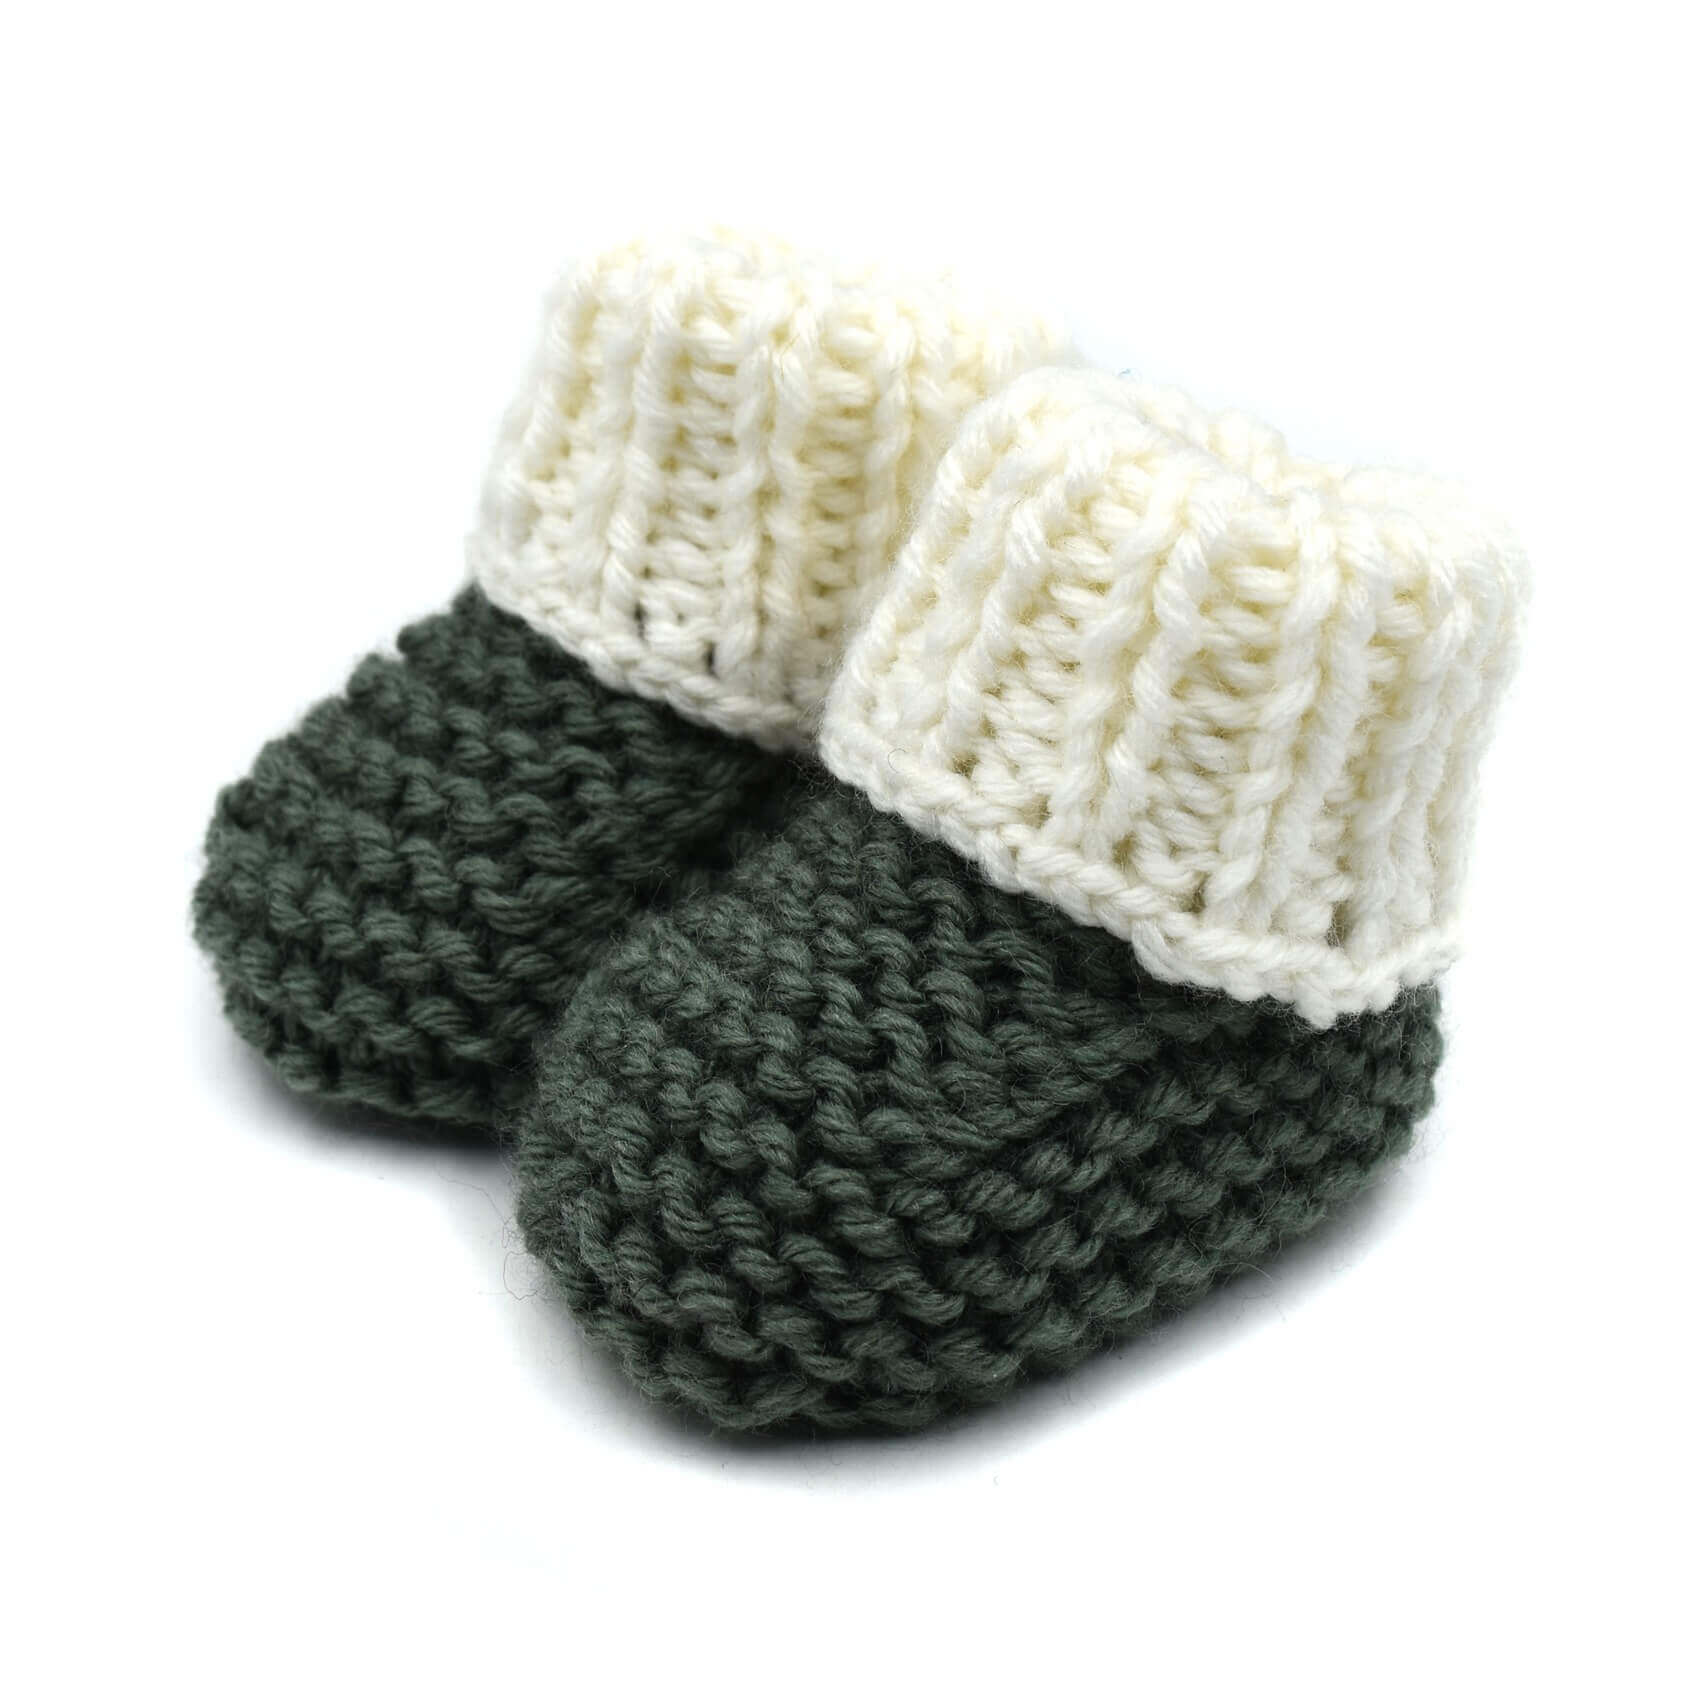 f39ef72f1e0 Baby Booties - Green